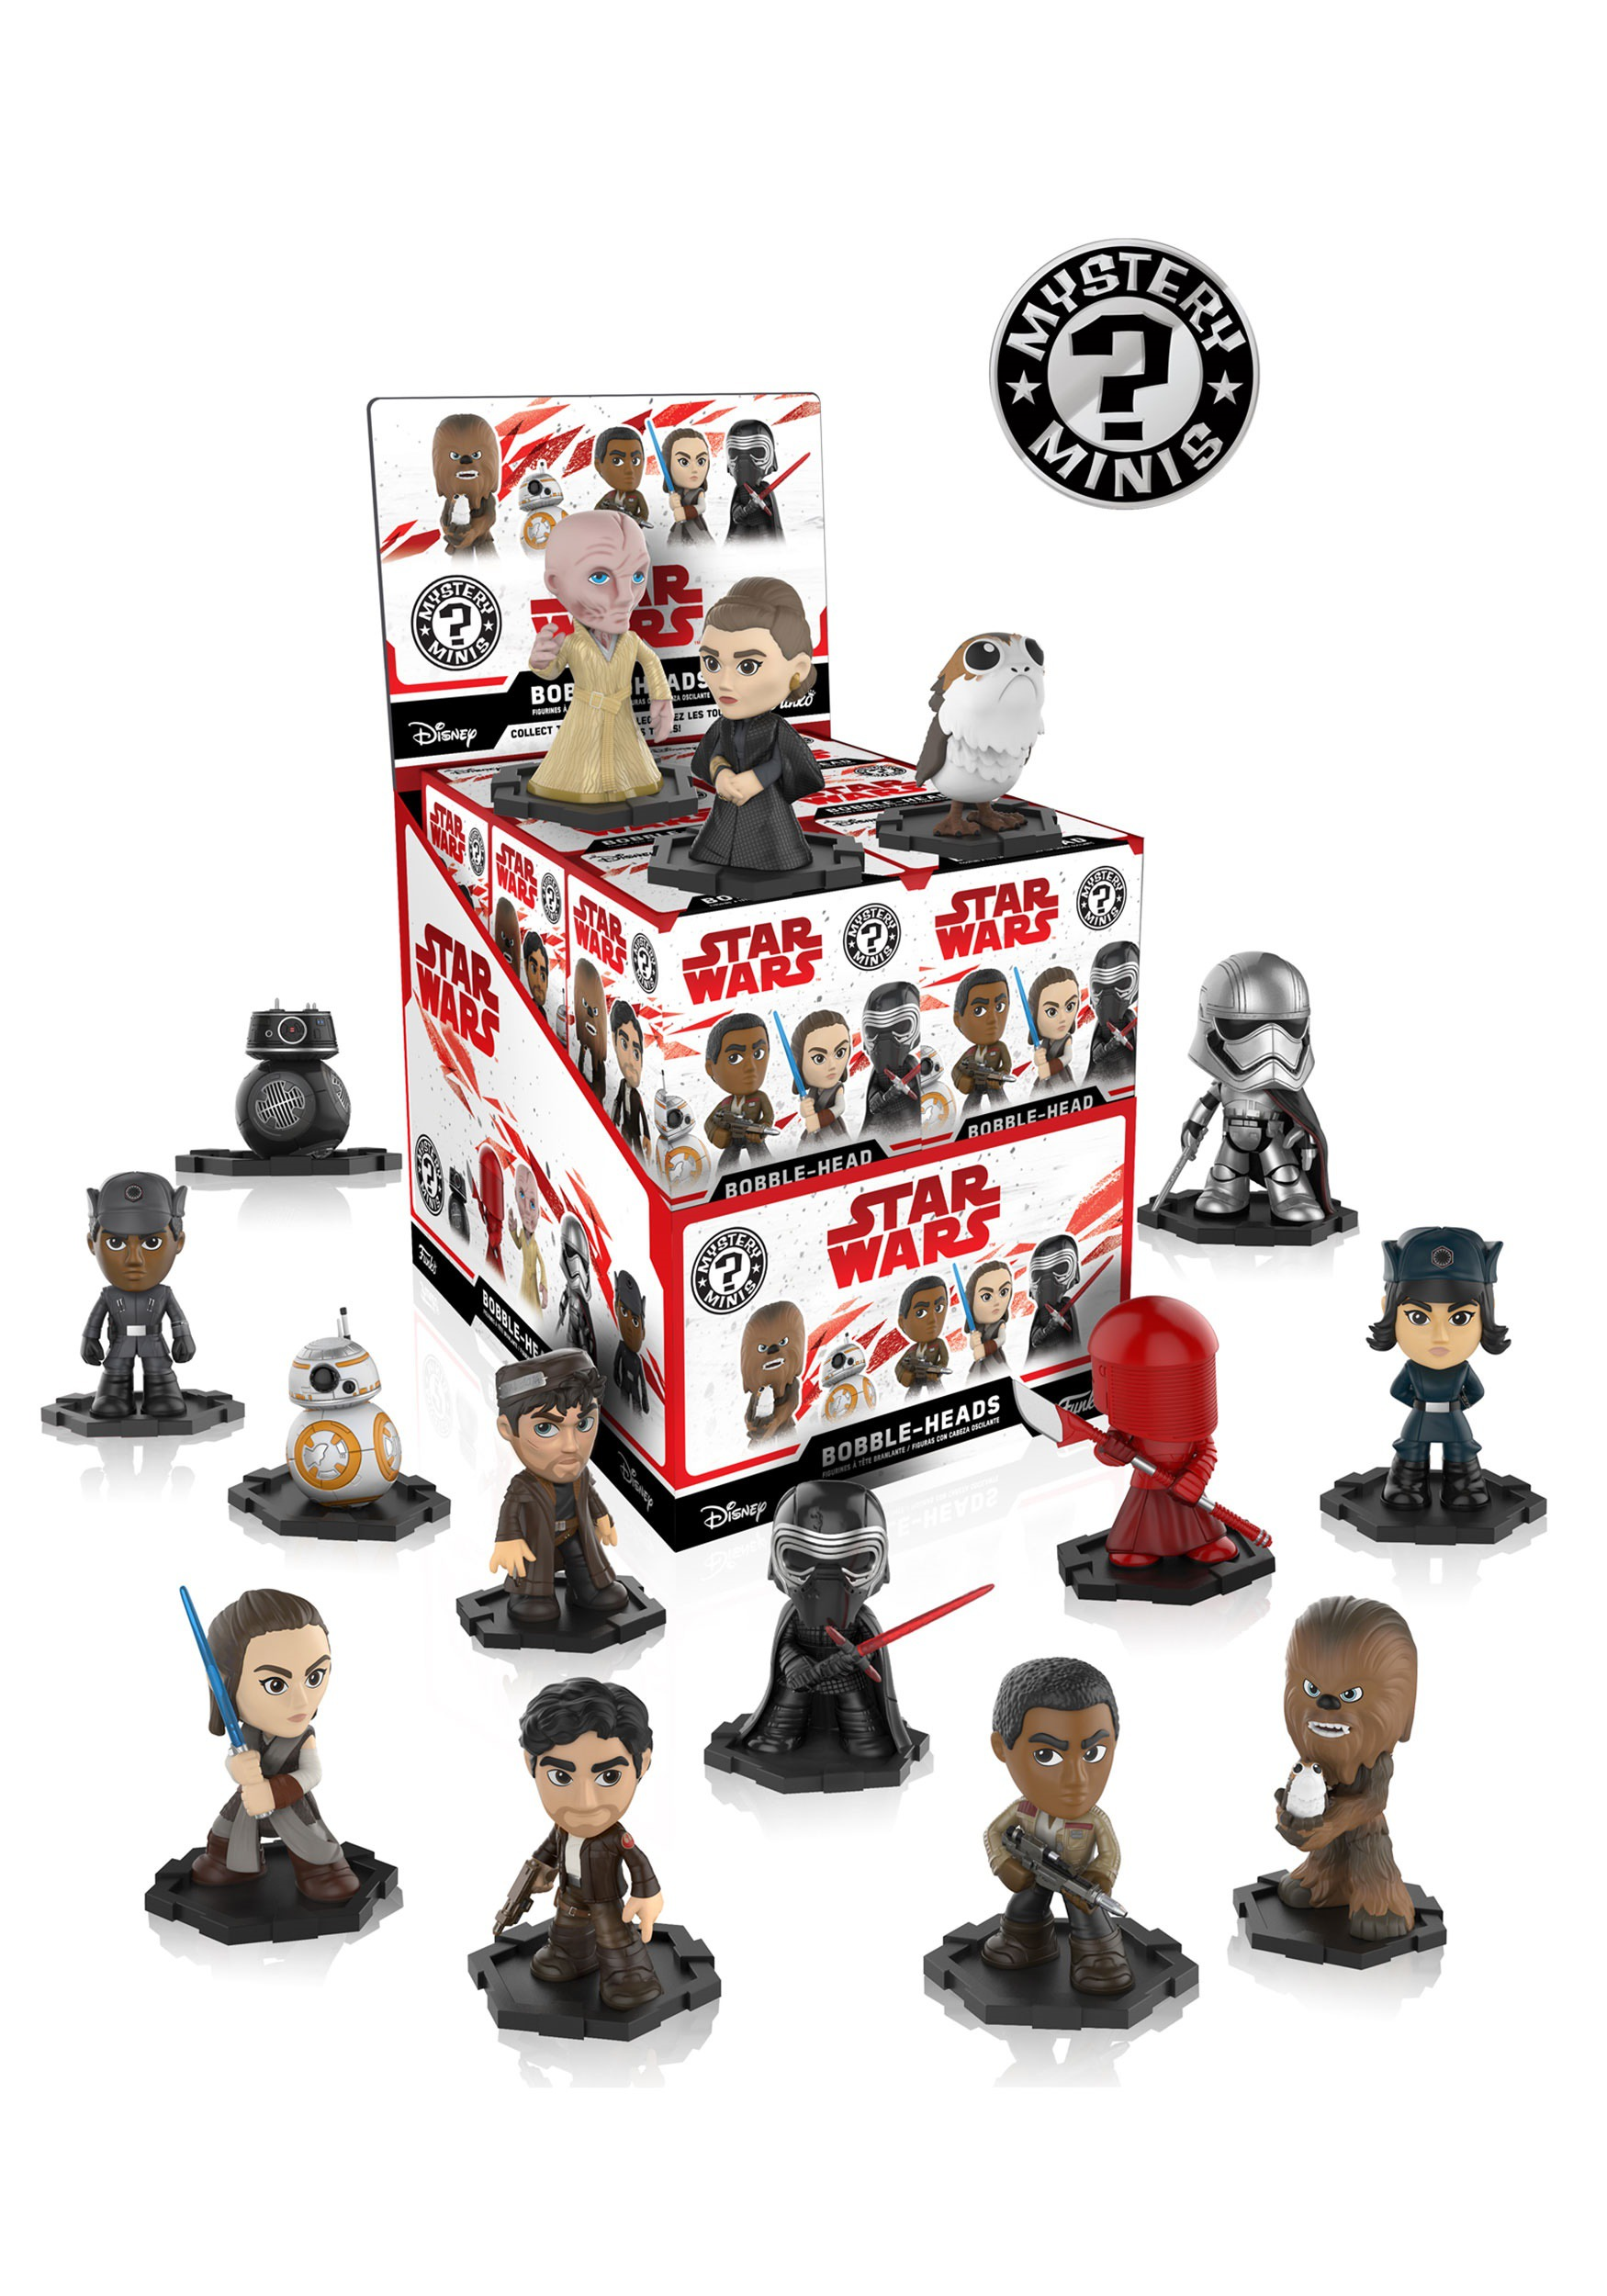 Star Wars The Last Jedi Mystery Minis Blind Box Bobblehead Figure